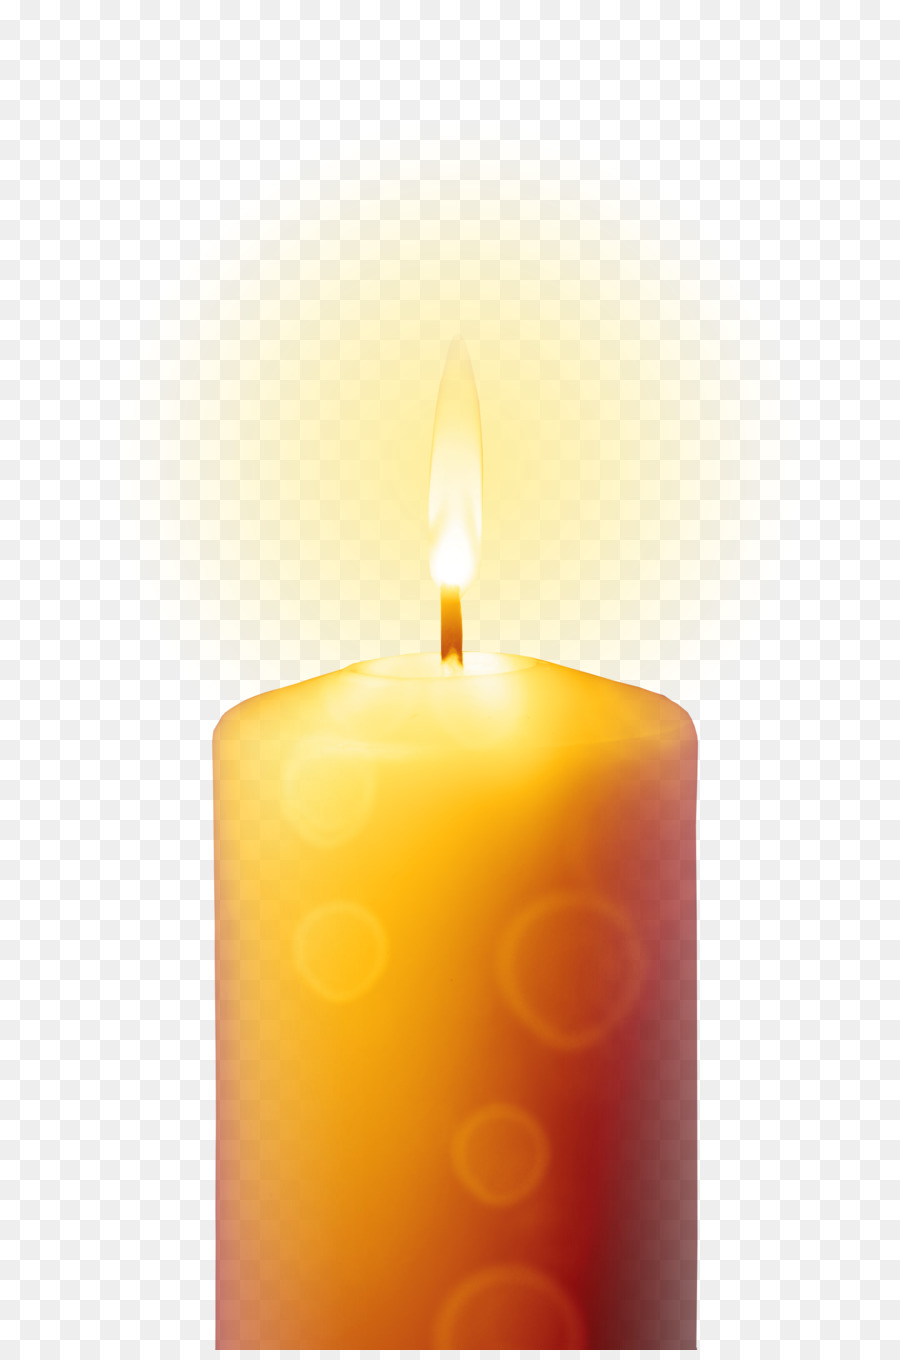 image library download Transparent candle death. Home cartoon clipart clip